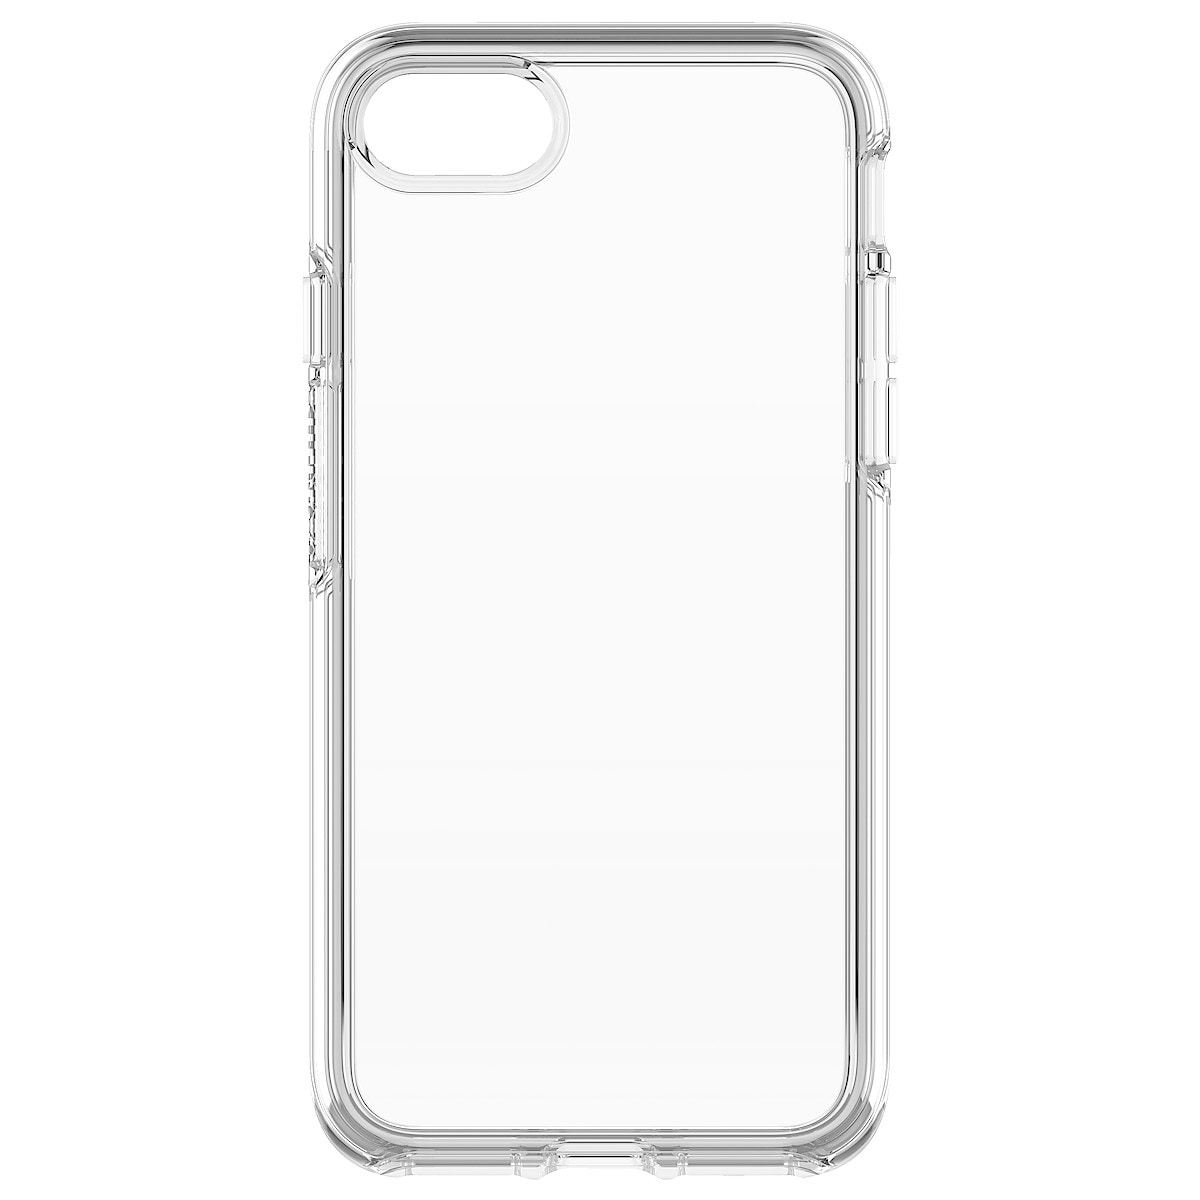 Otterbox Symmetry Protective Clear Case for iPhone 7